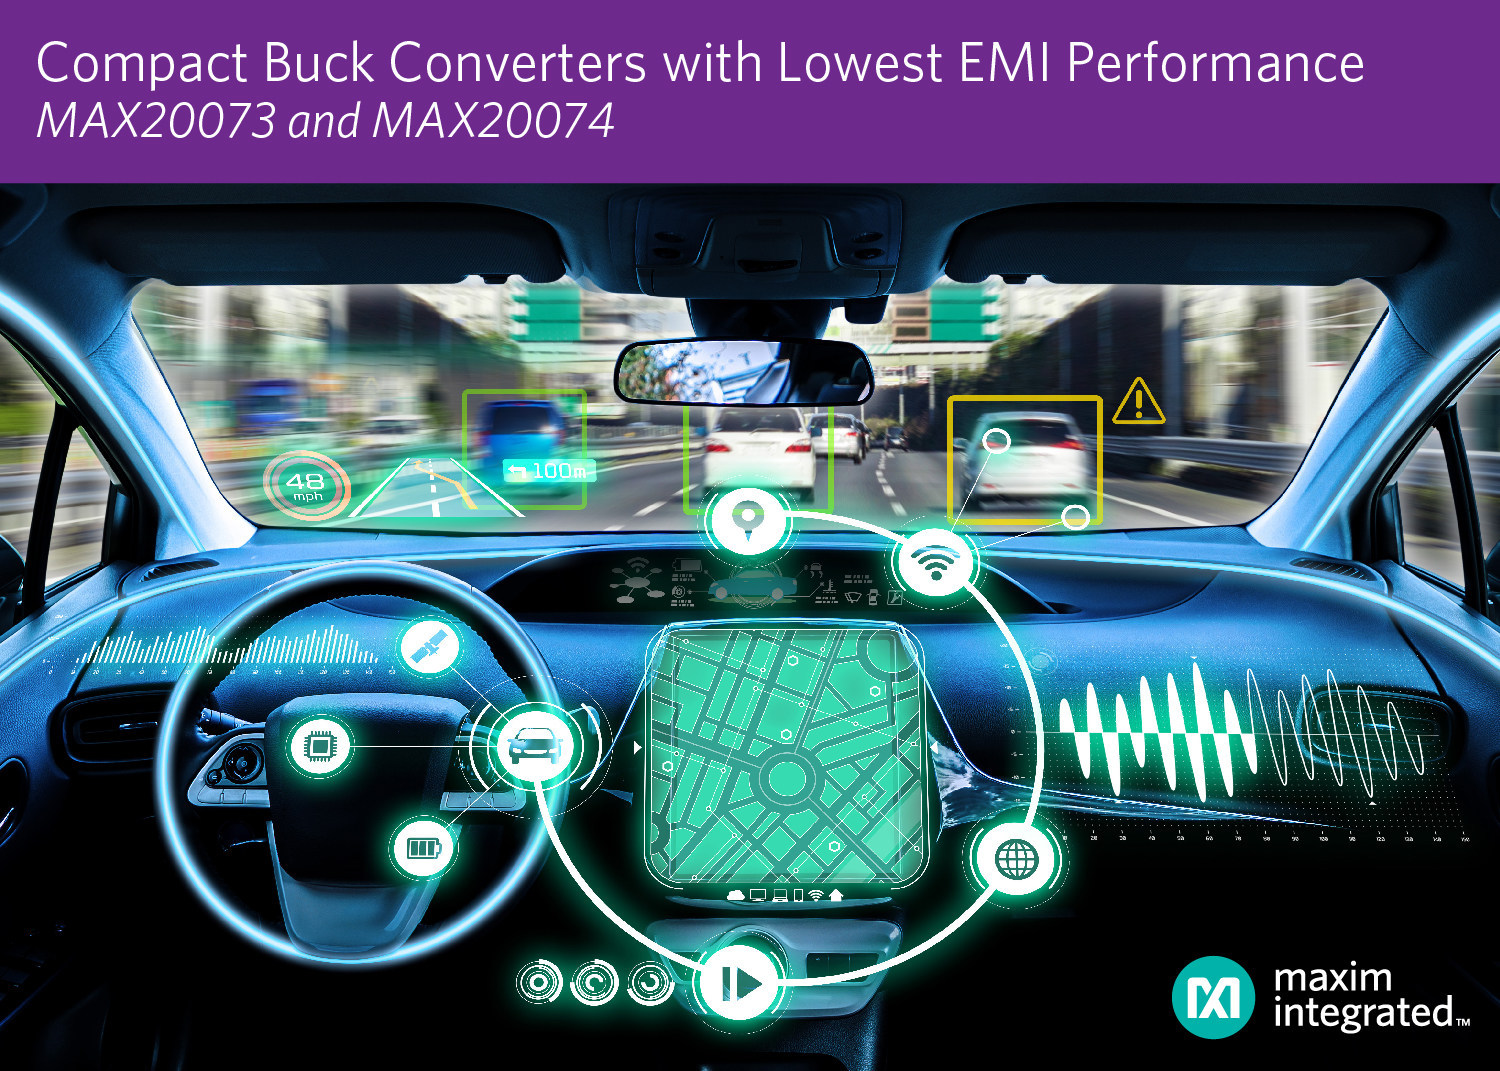 Compact Synchronous Buck Converters Provide Industry's Lowest EMI Performance for Automotive Infotainment and ADAS Applications